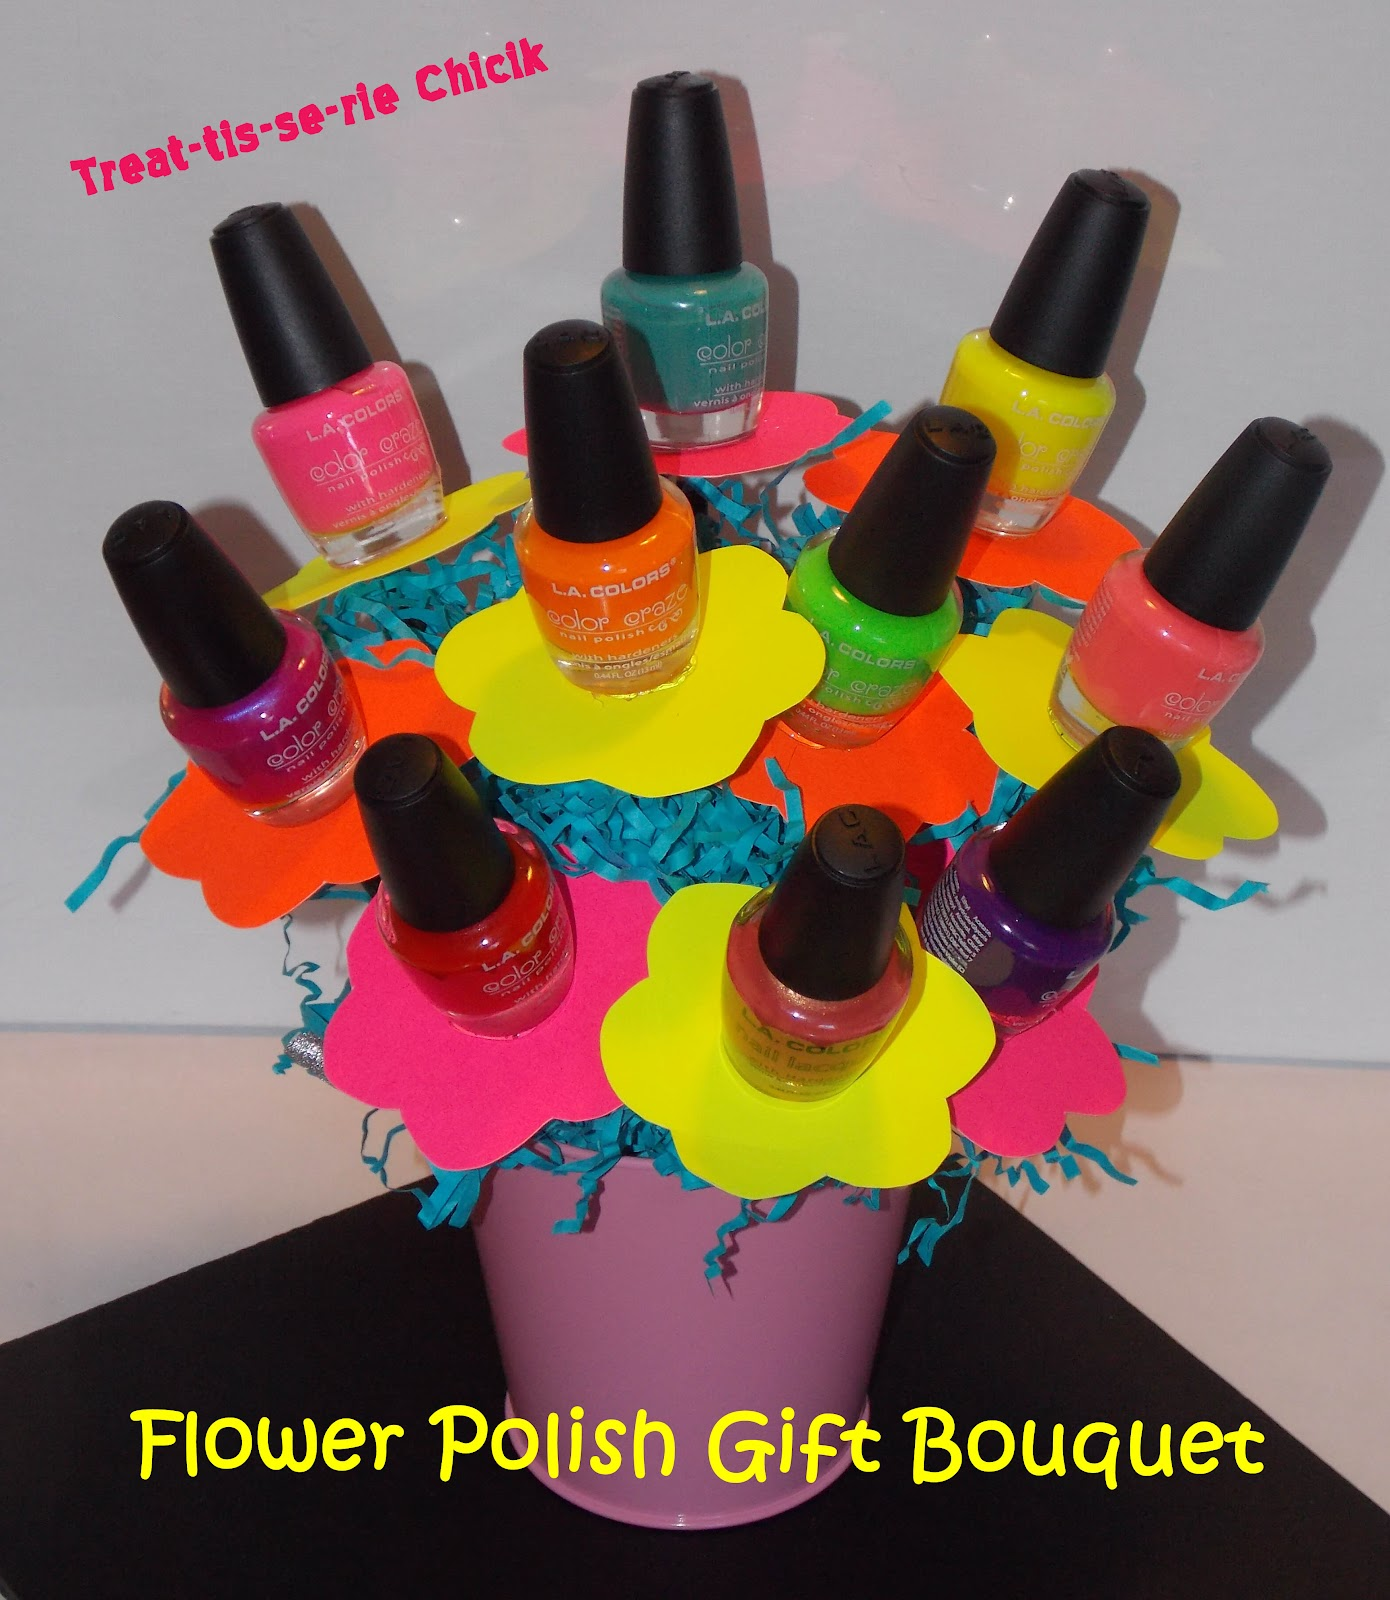 Treat tis se rie chick flower polish bouquet this is one of my most visited posts on any blog ive created flower polish gift bouquet izmirmasajfo